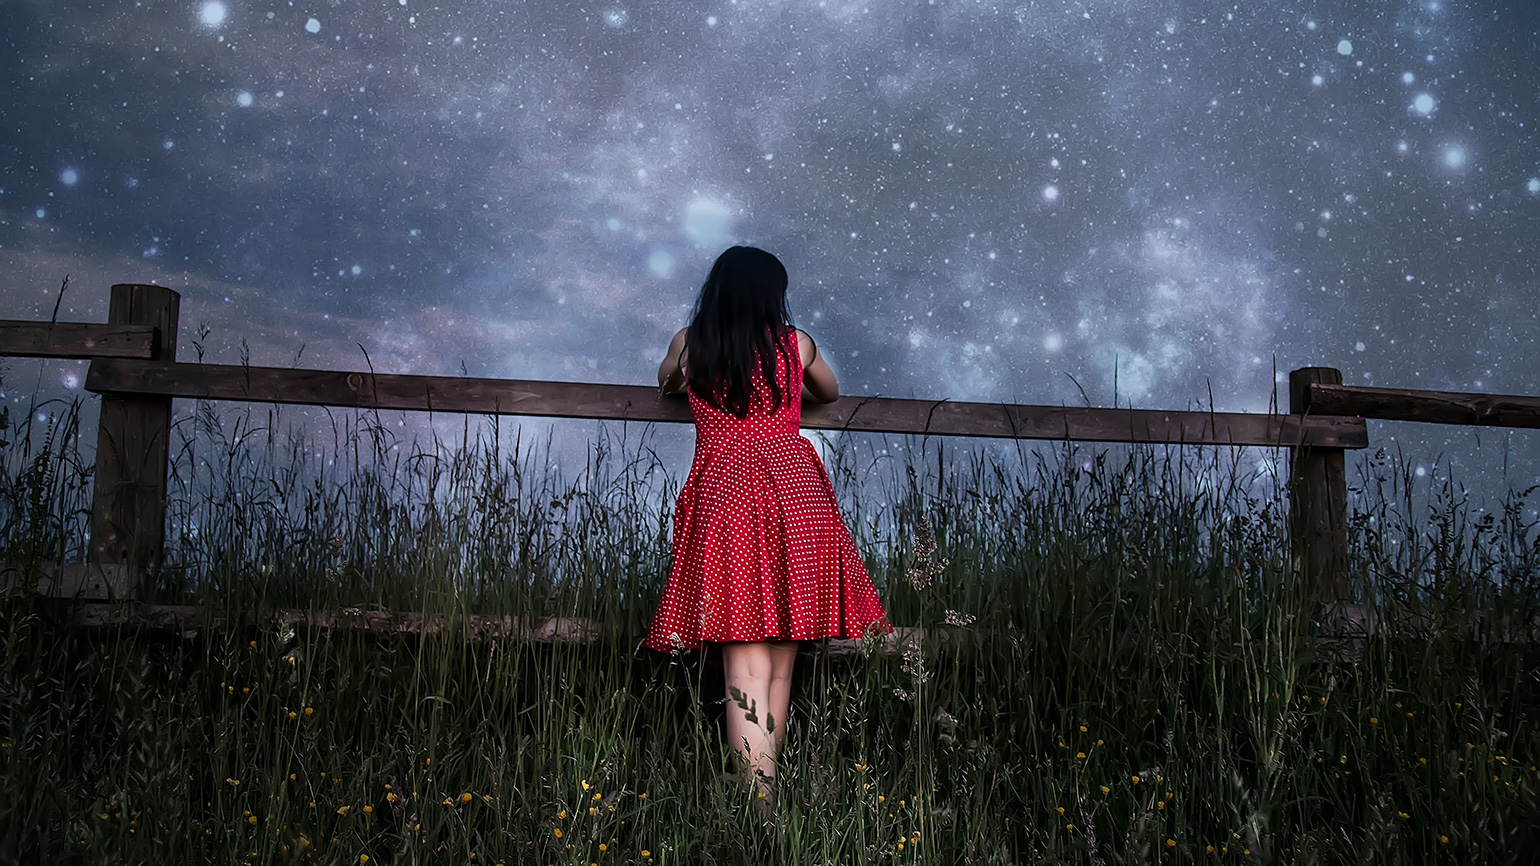 A young woman gazes up at a star-filled sky